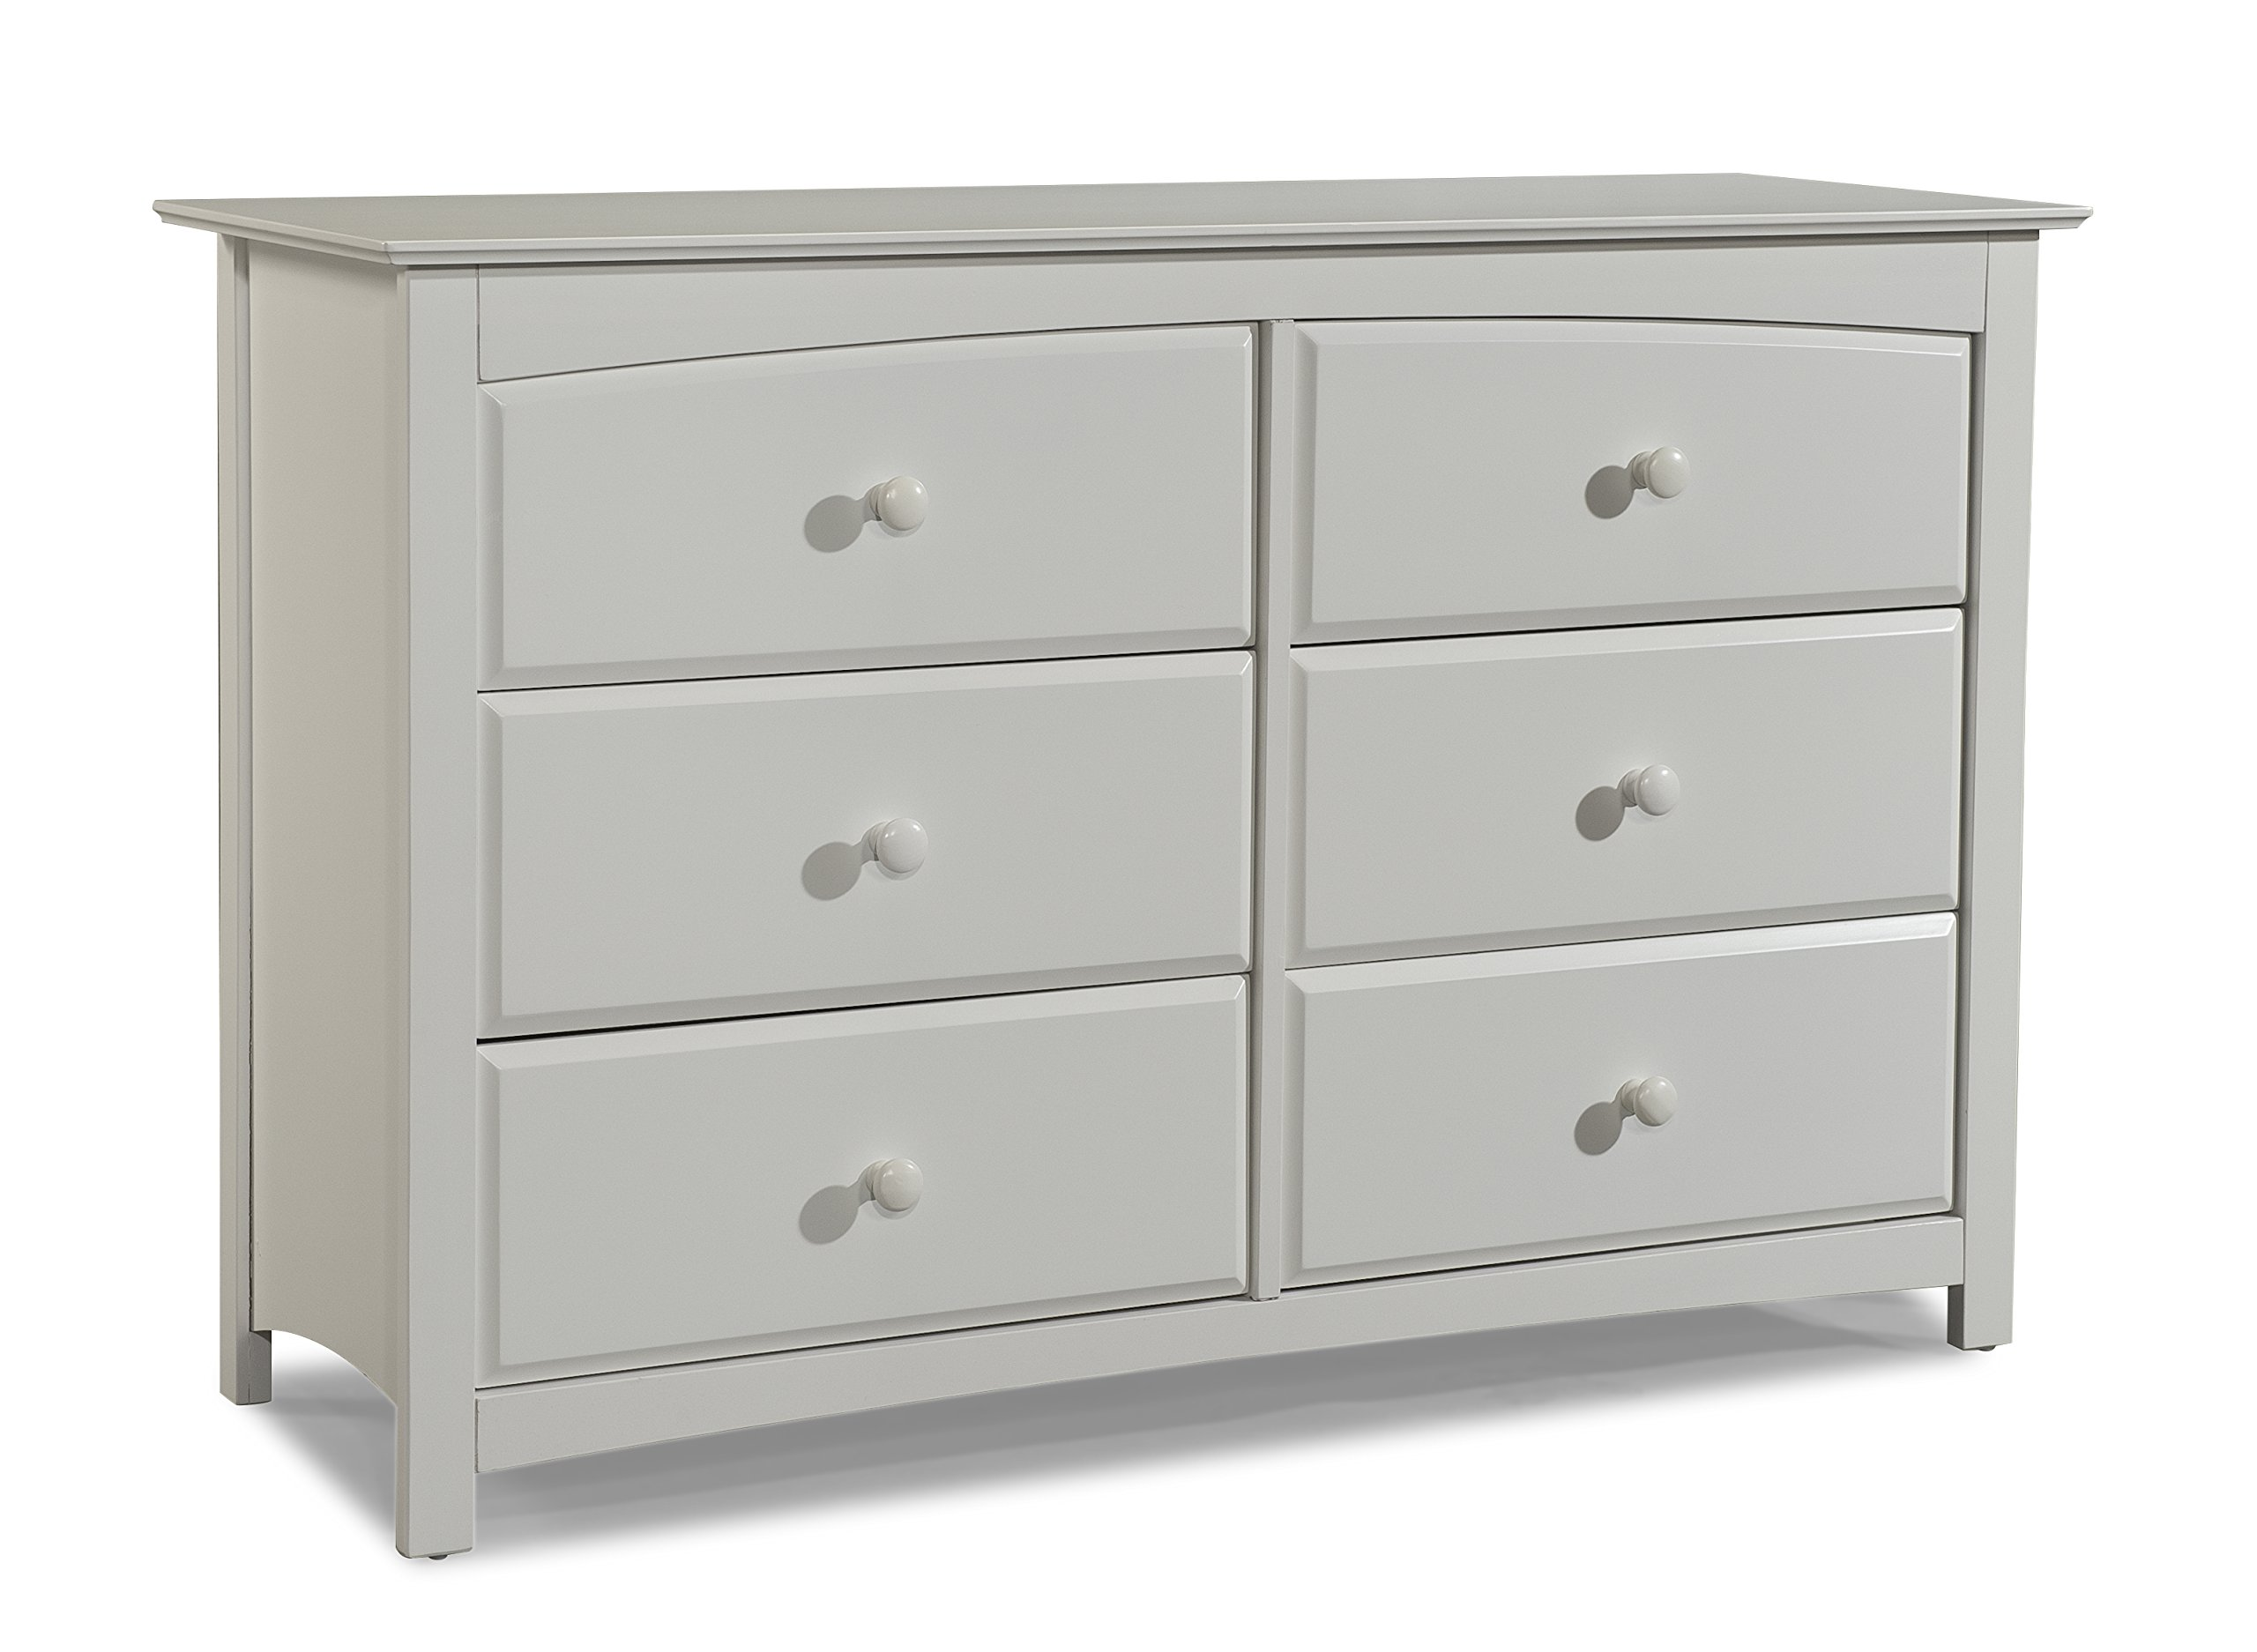 Stork Craft Kenton 6 Drawer Universal Dresser, White